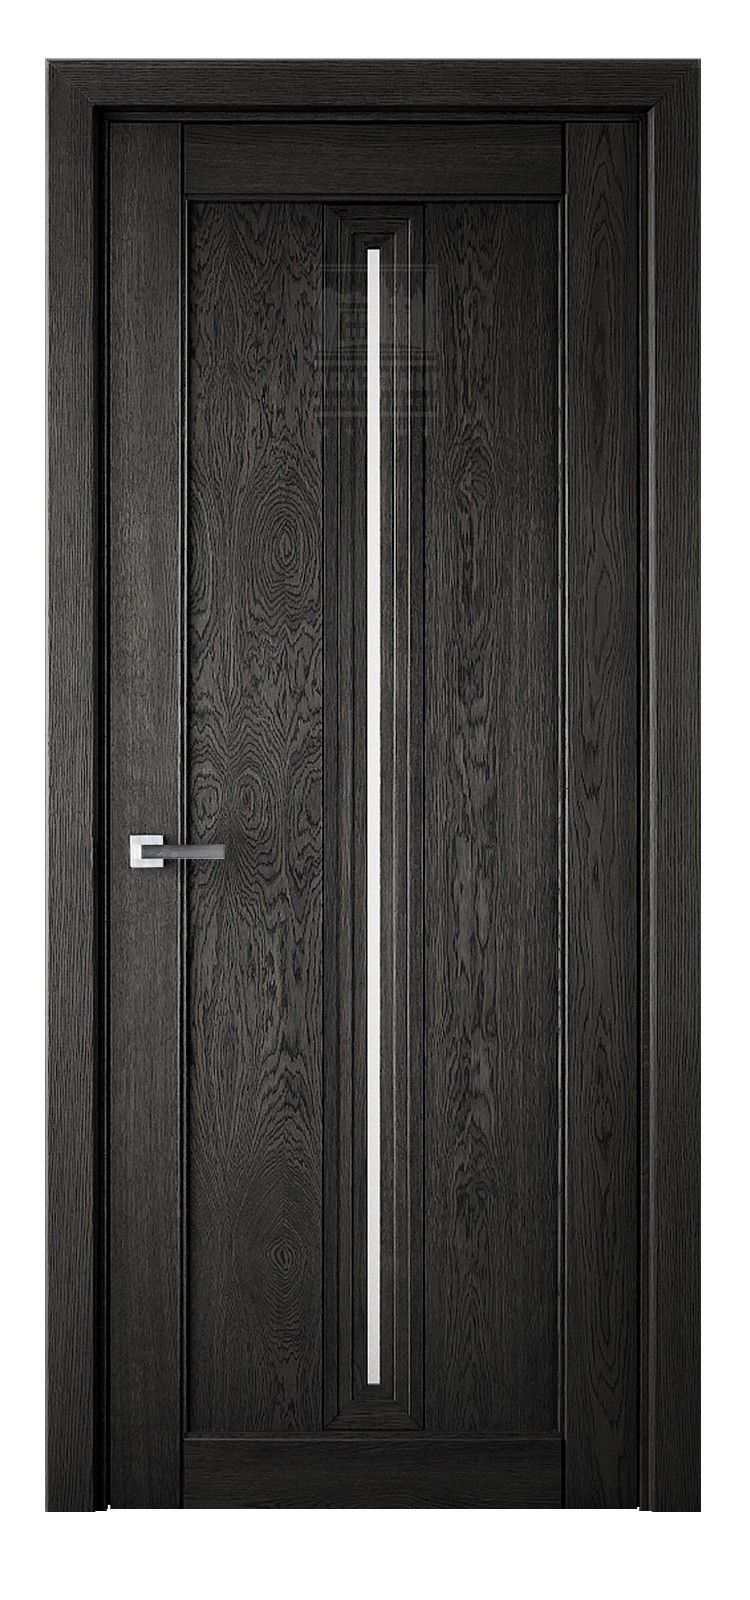 Arazzinni Ego E6123 Interior Door Black Oak Black Oak